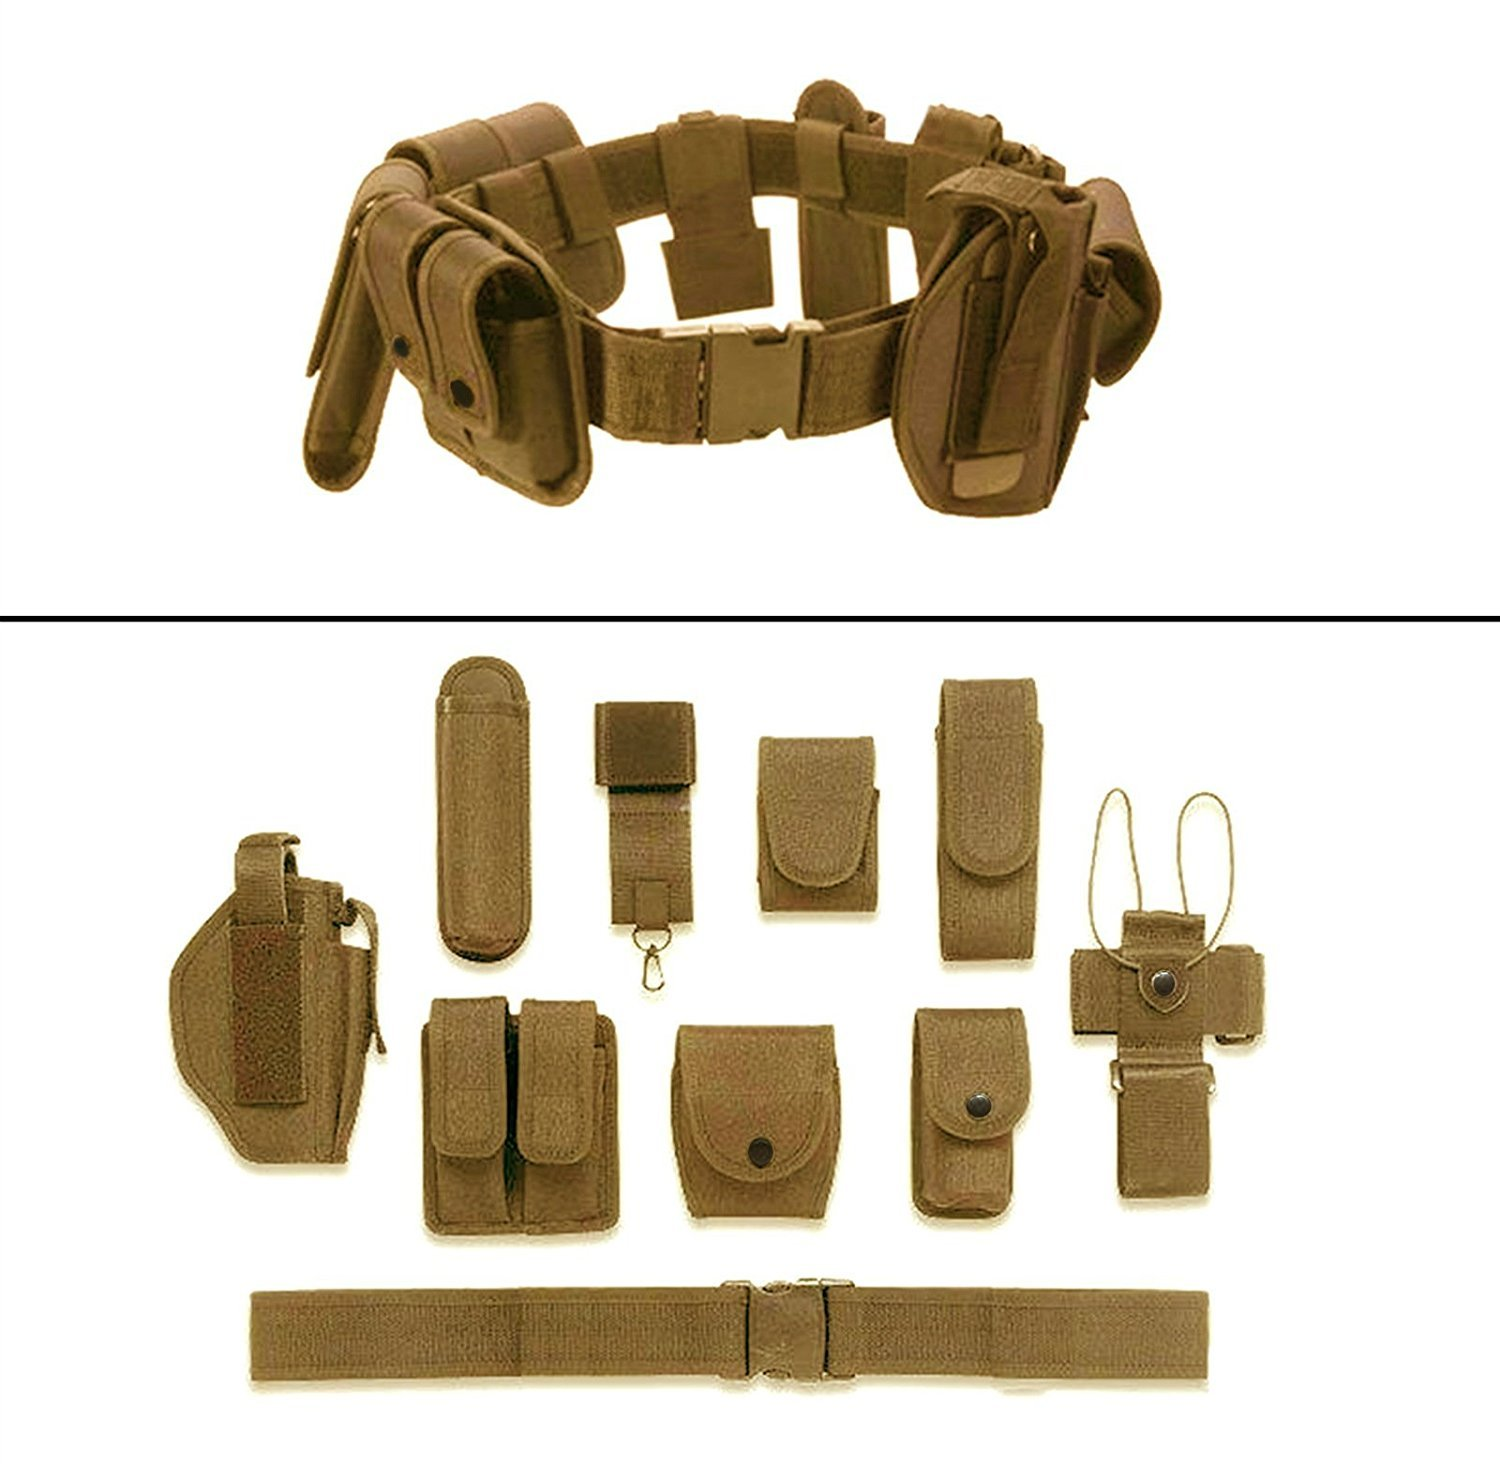 Earth Tan 10-Pc Military Duty Nylon Utility Belt - DeluxeAdultCostumes.com